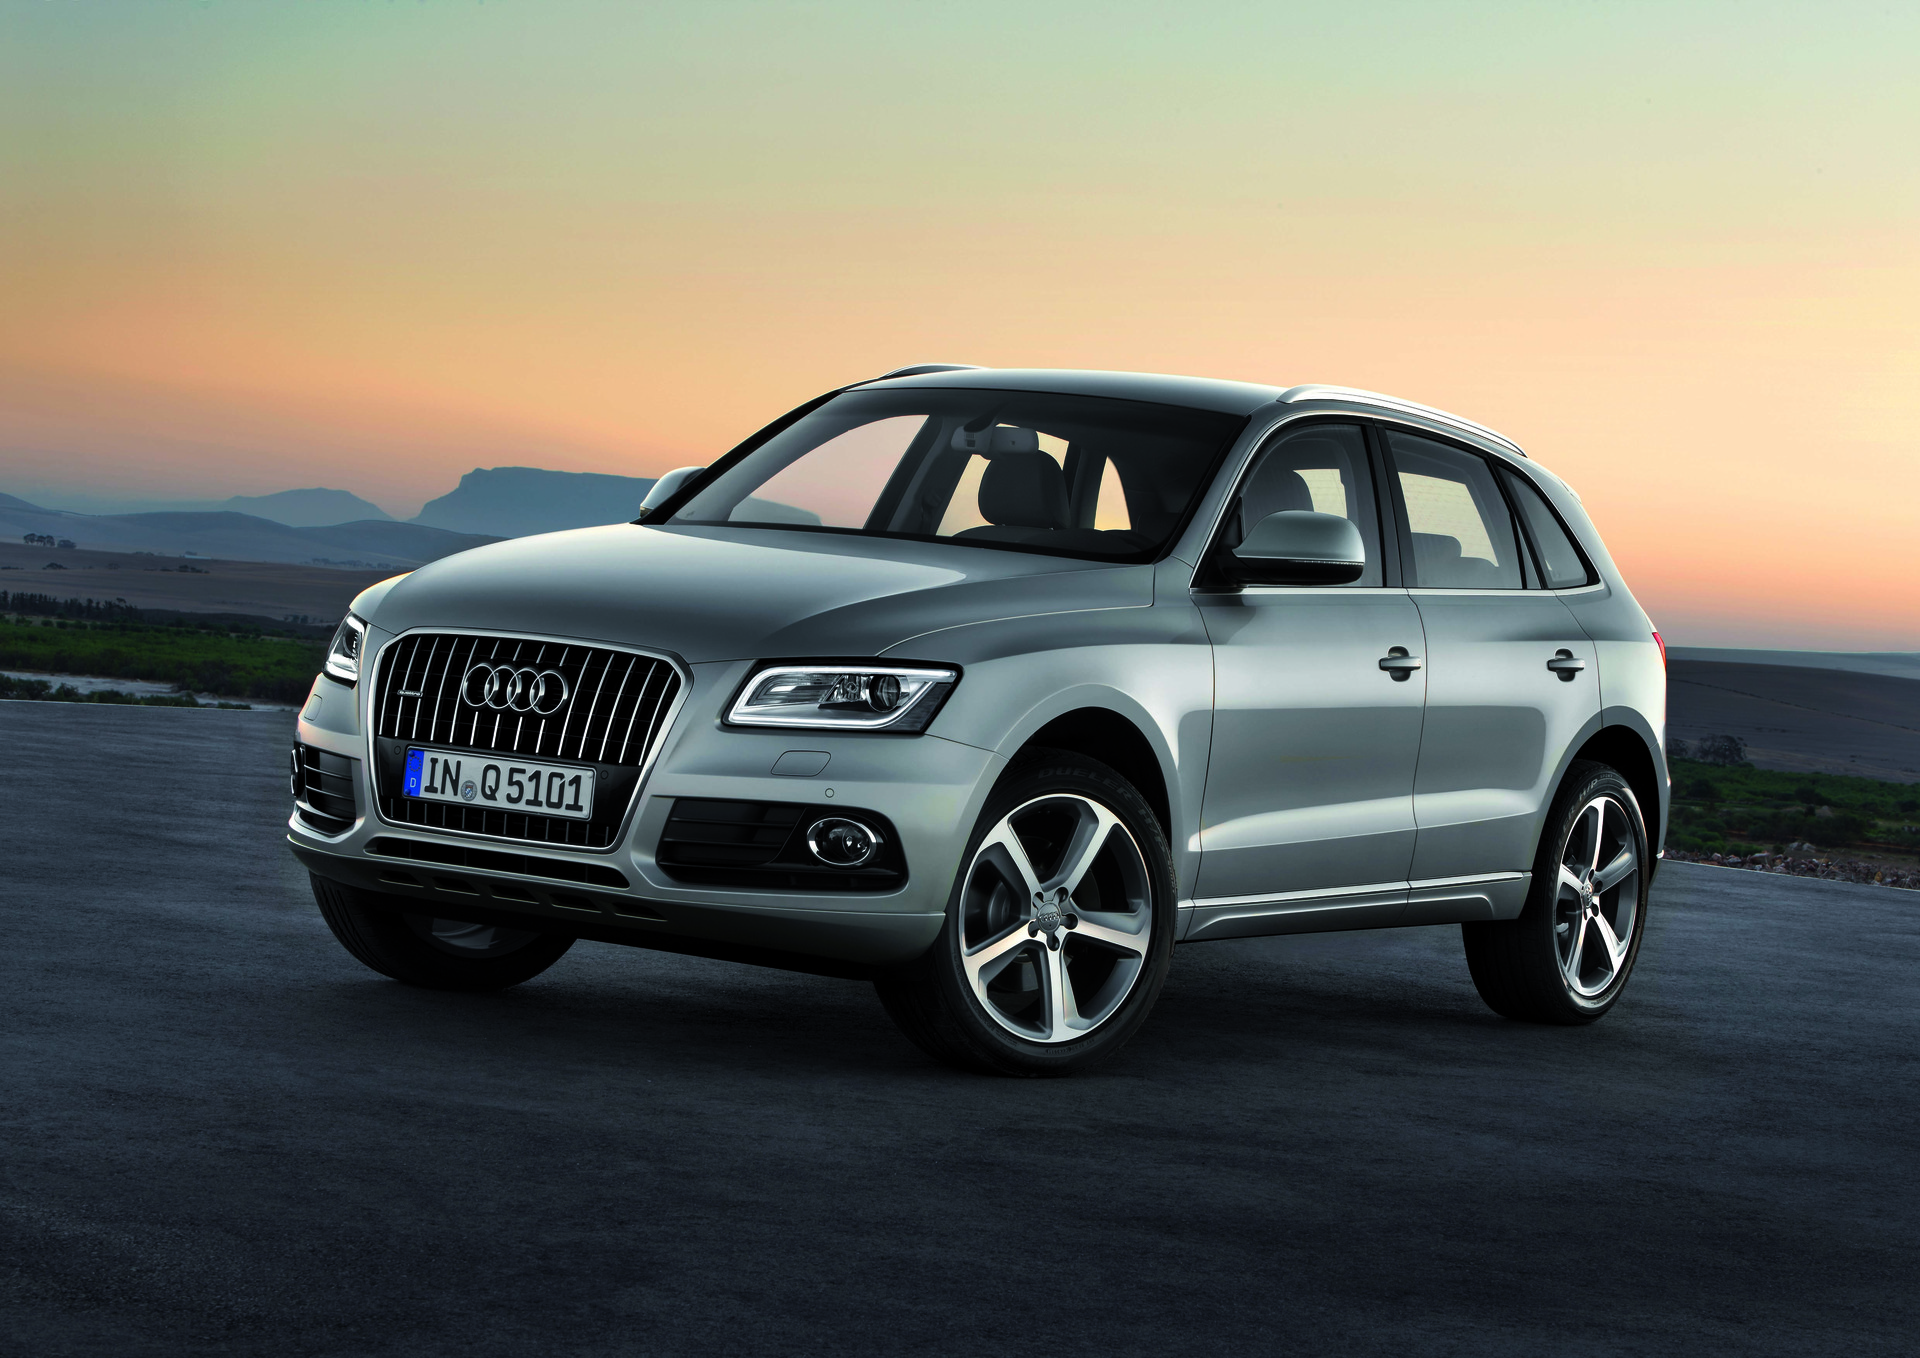 2016 audi q5 prices and expert review the car connection